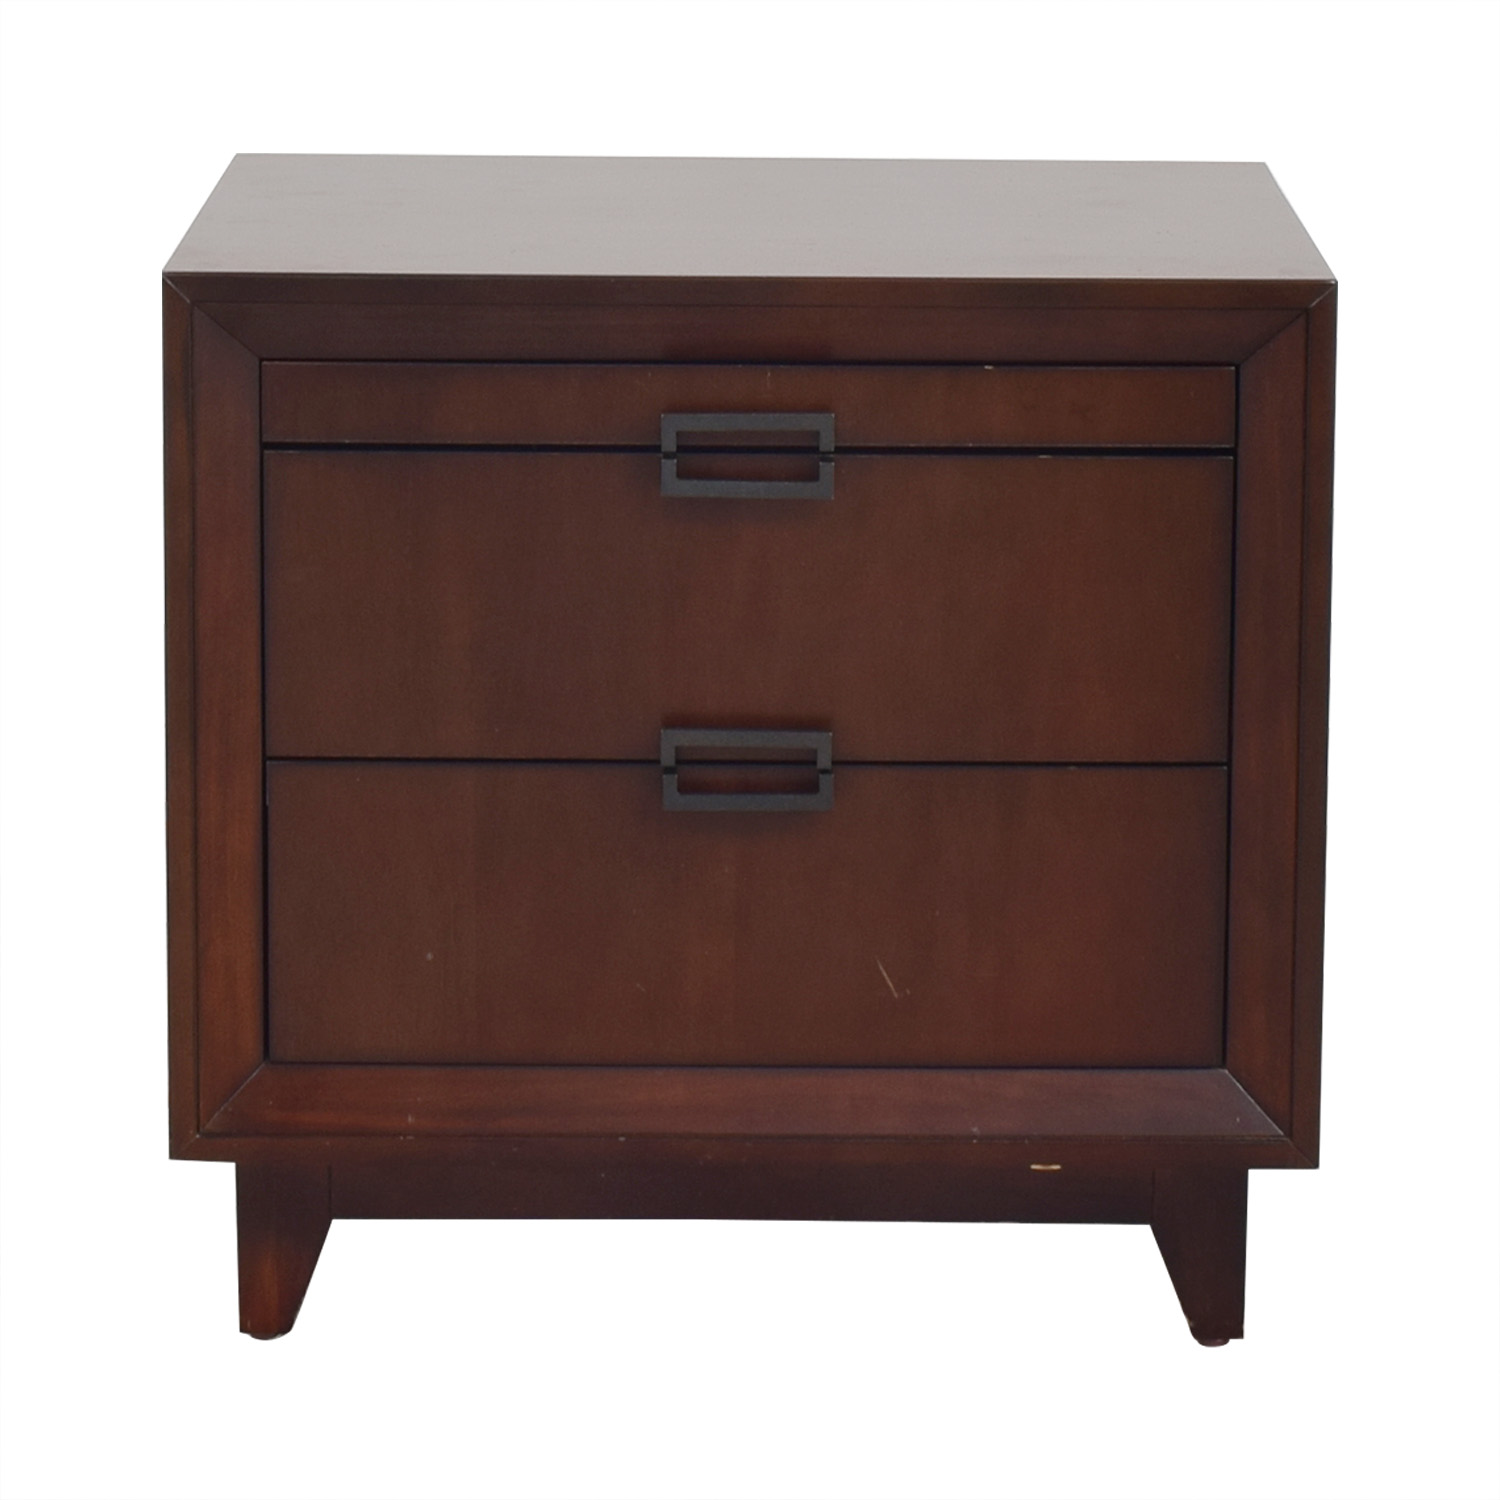 Casana Furniture Casana Vista Nightstand price